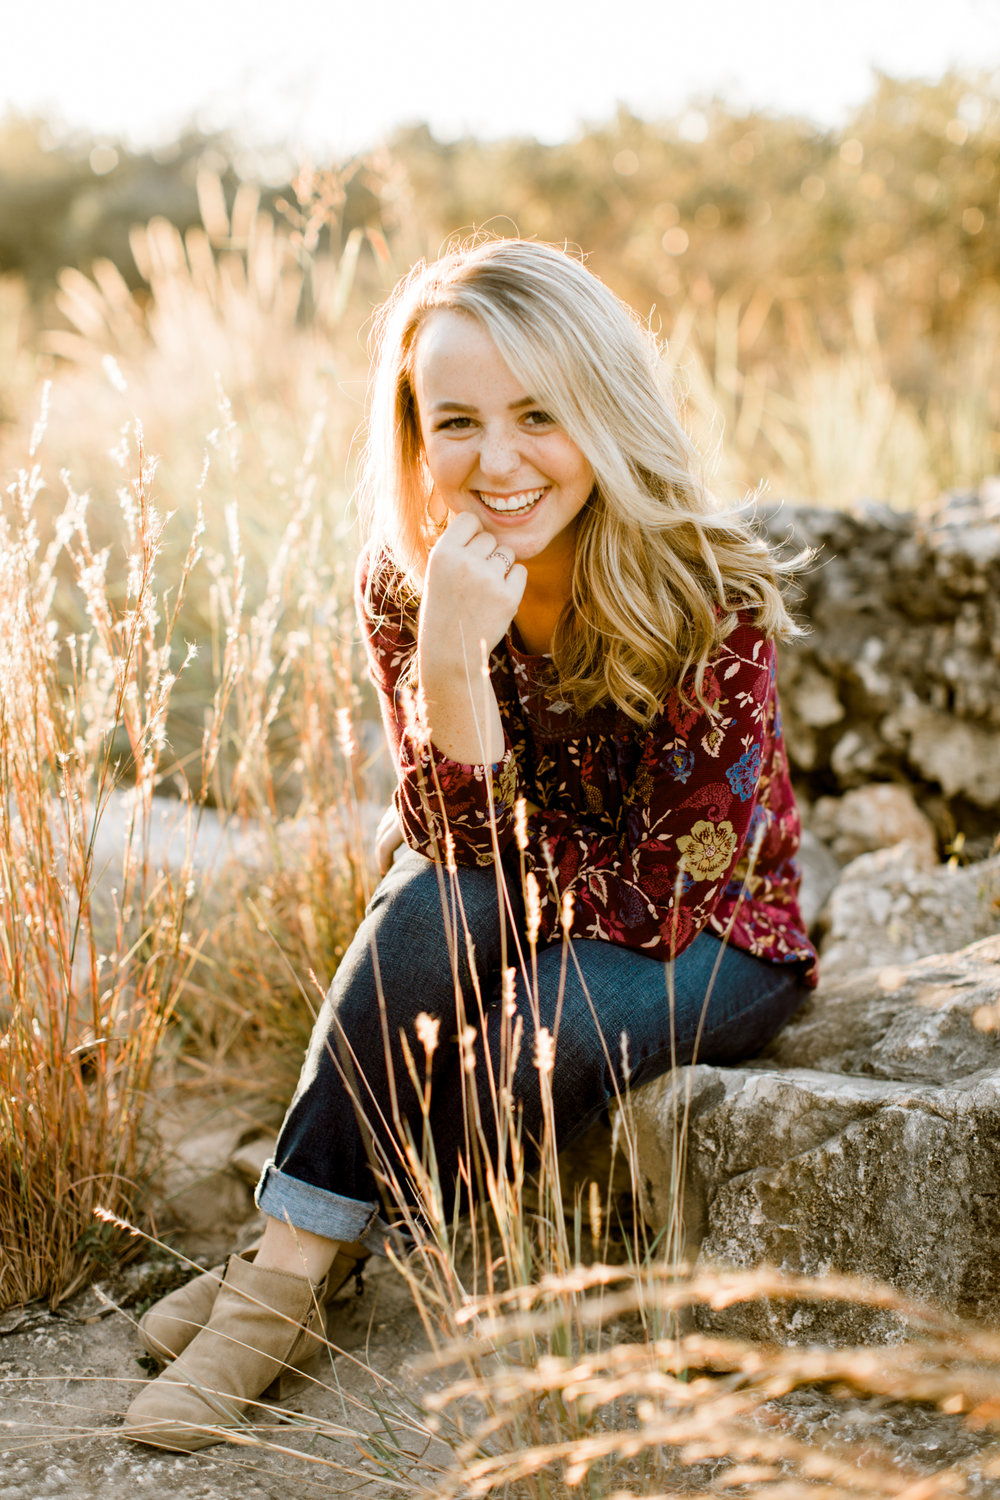 senior portraits at stone oak park // san antonio, texas senior photographer // www.abbihearne.com